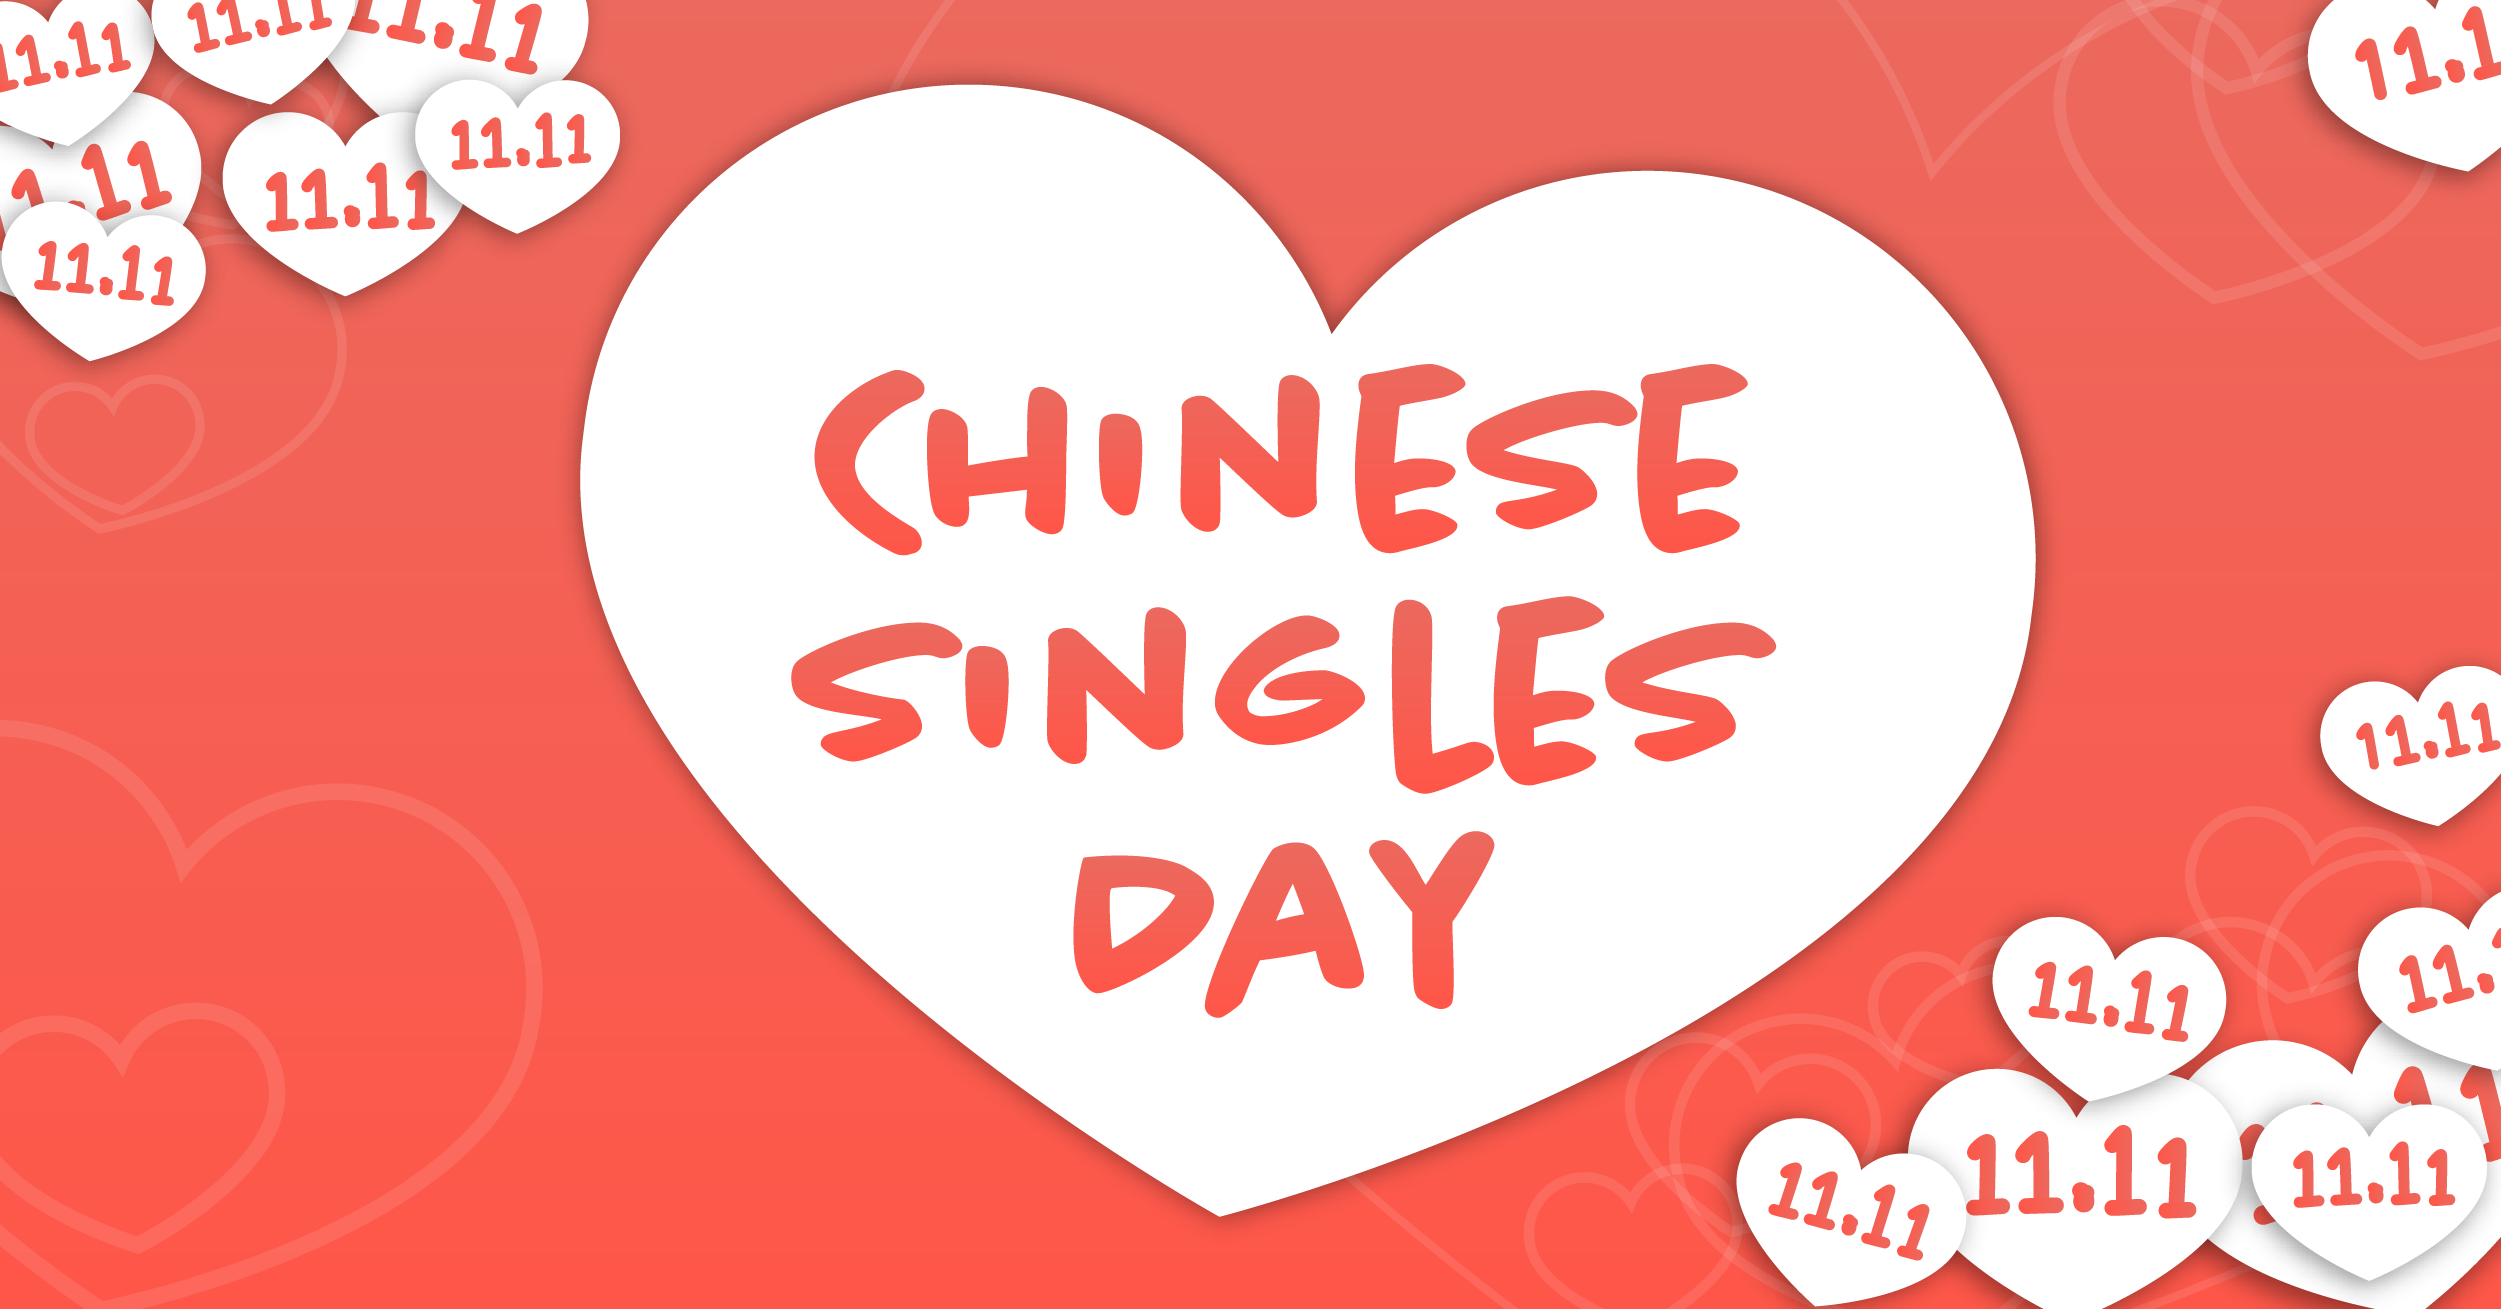 Chinese Singles Day: what it is and how to get involved